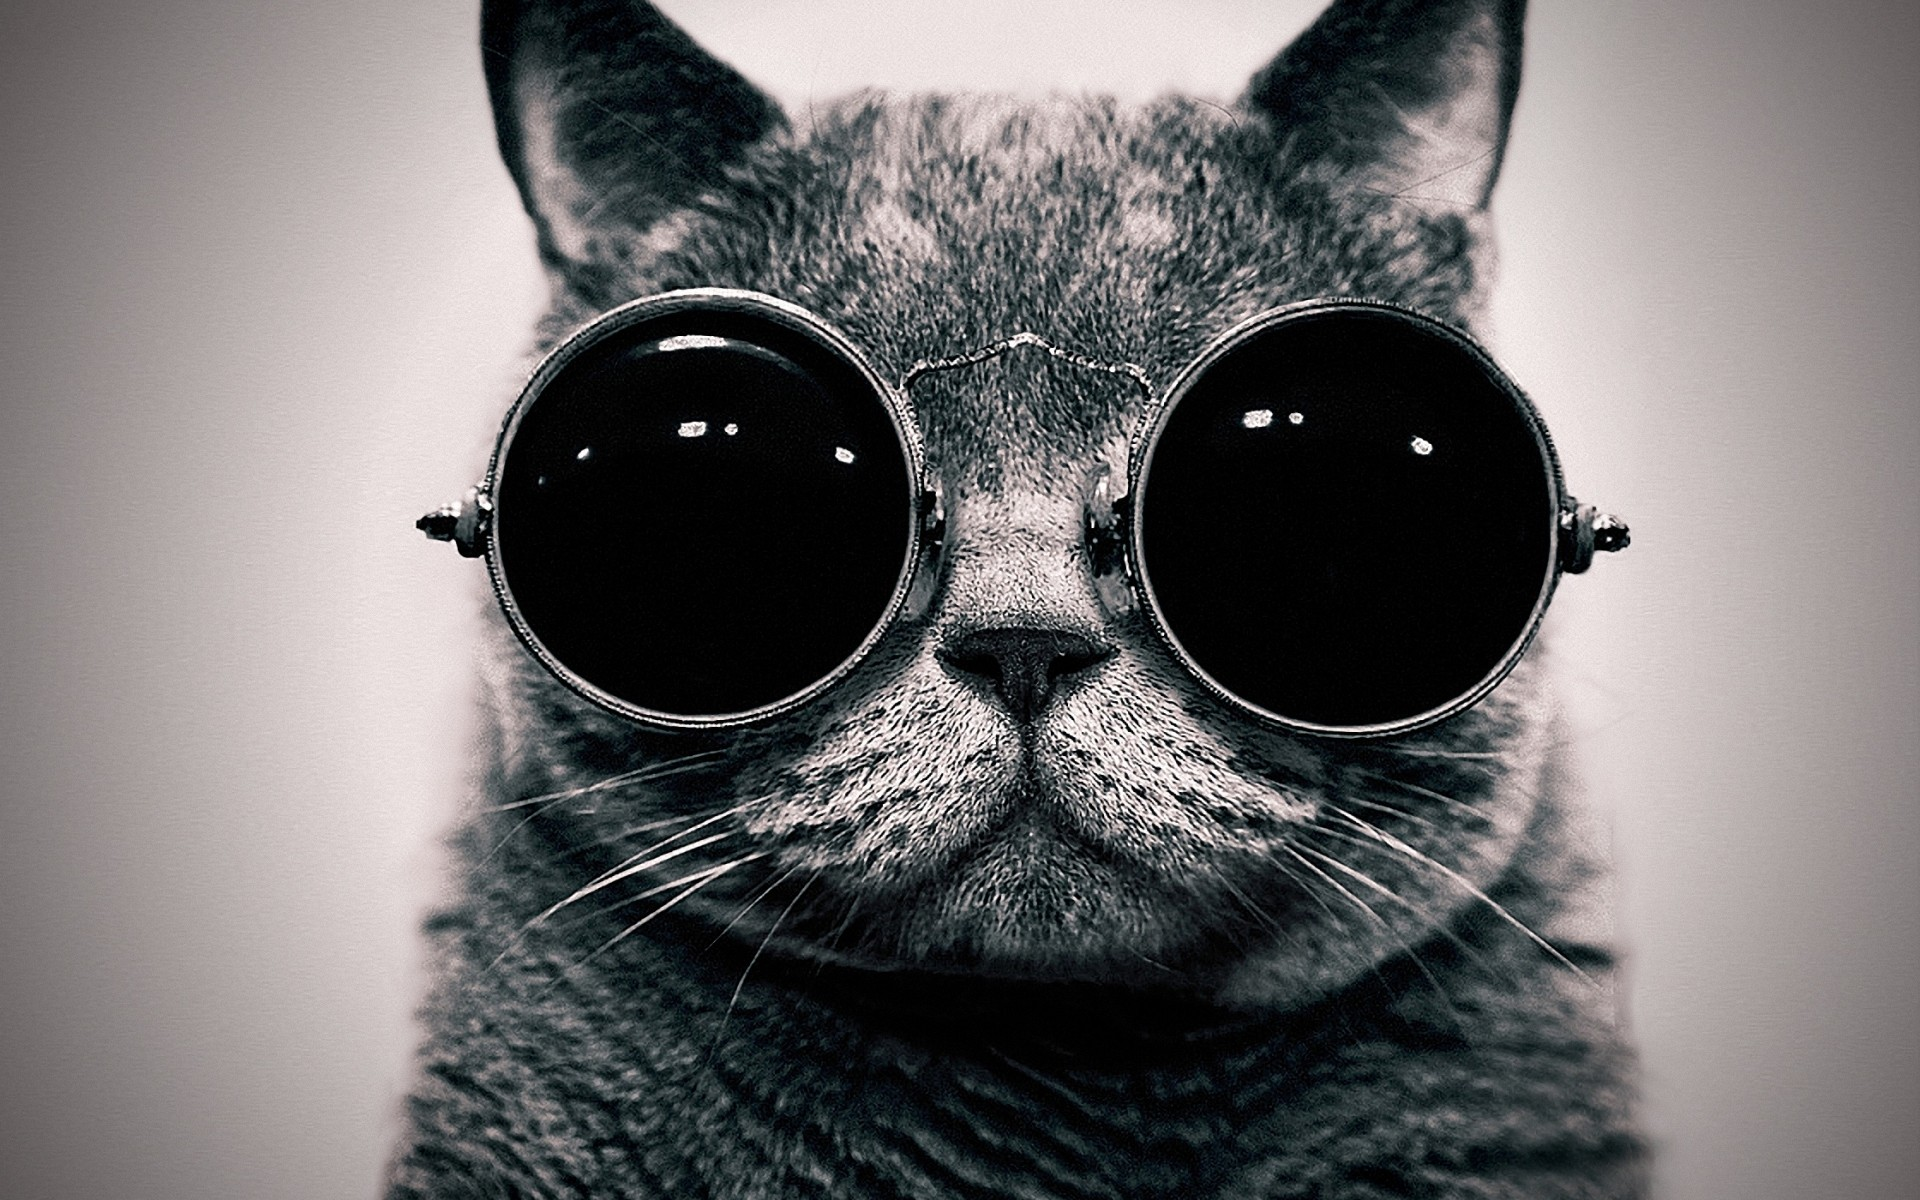 Cat with Glasses   Wallpaper 32916 1920x1200